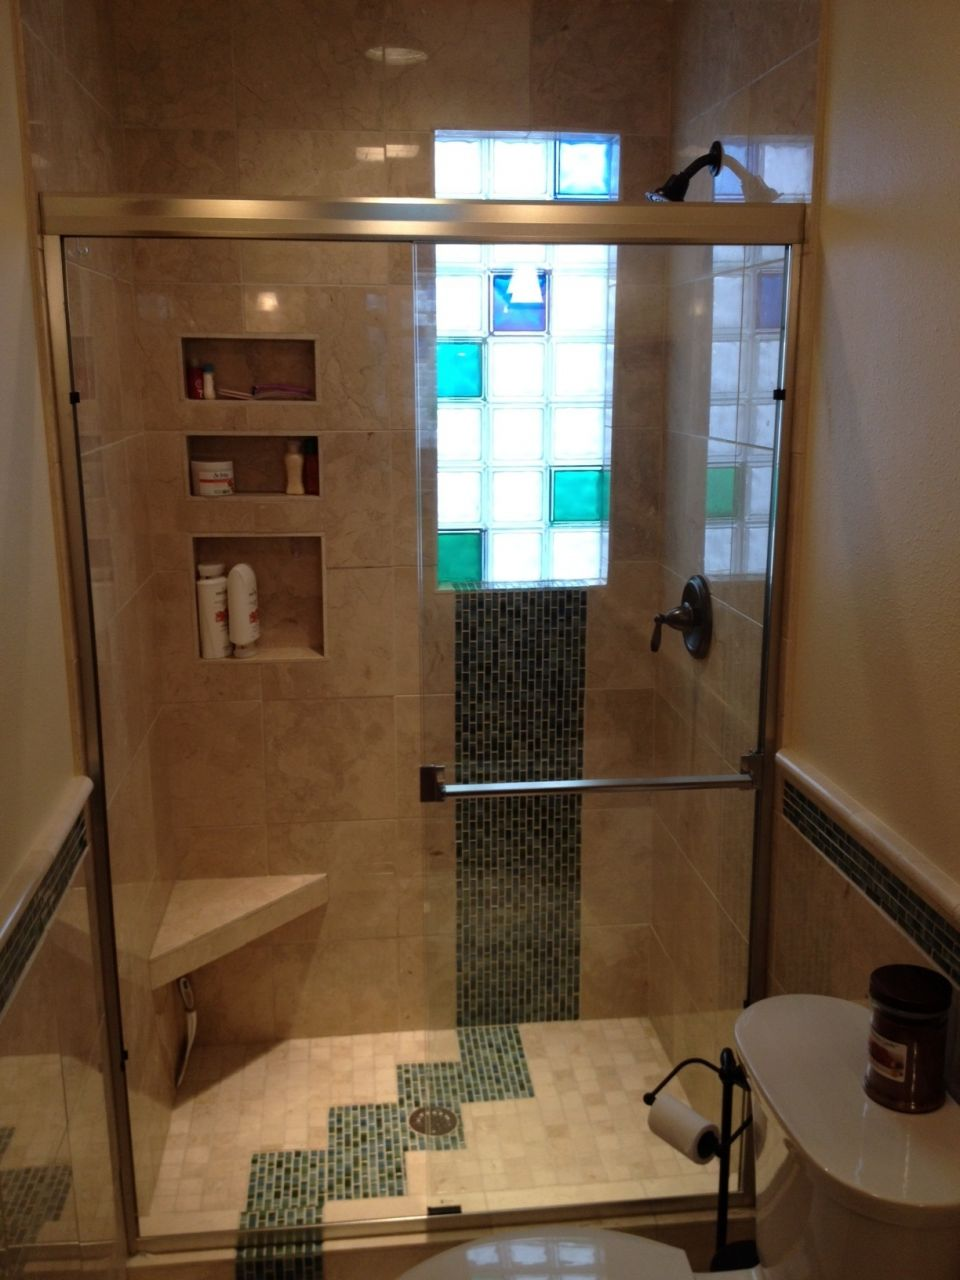 Shower Window Innovate Building Solutions Blog Bathroom Kitchen Basemen